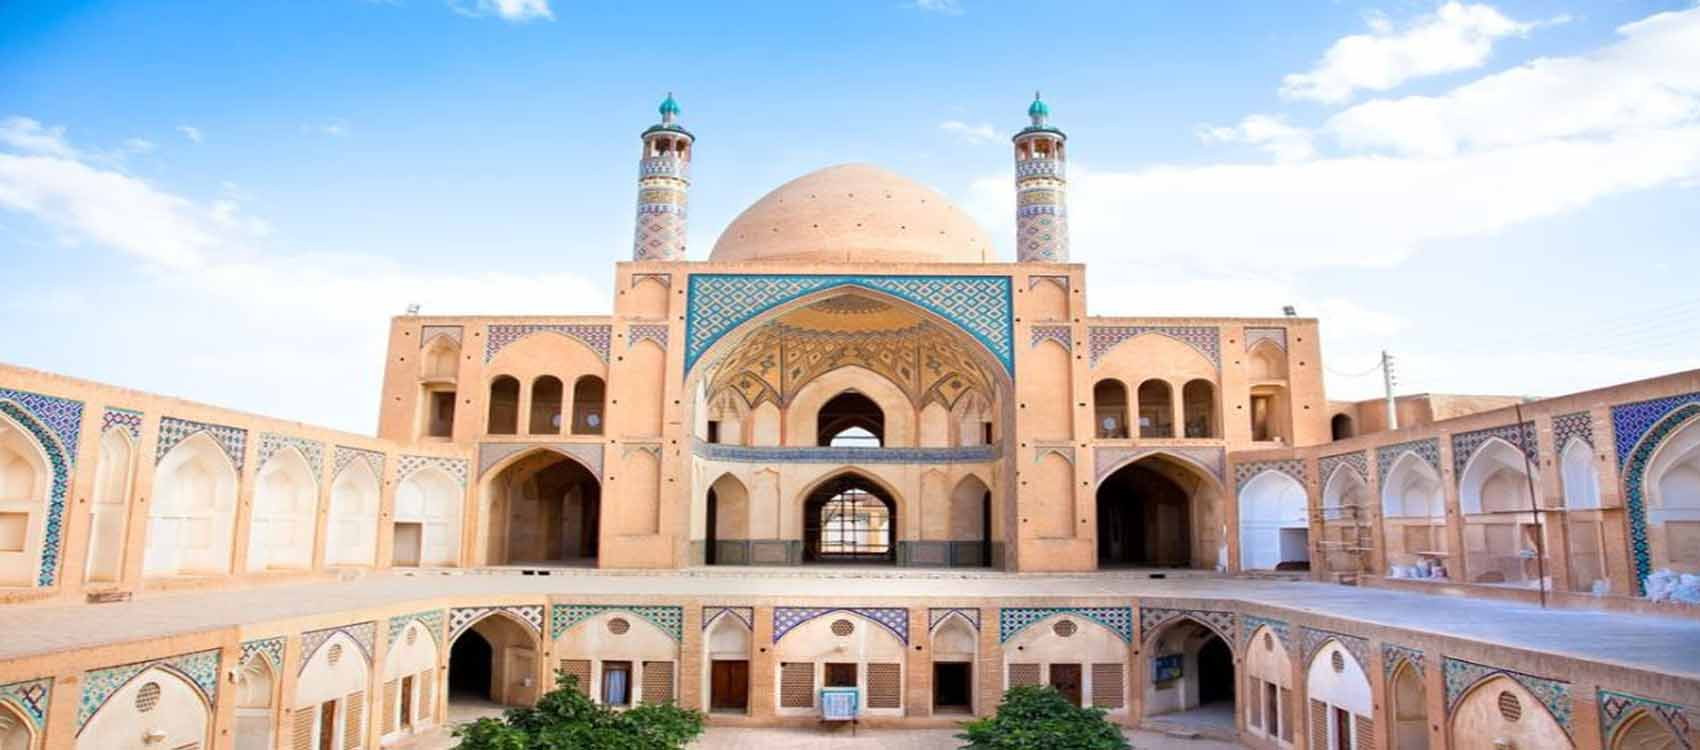 Agha Bozorg Mosque and School in Kashan,Iran tourists attractions, Aqa Bozorg Mosque and school in Kashan, Iran,Iran tour,tour to Iran,Kashan travel guide